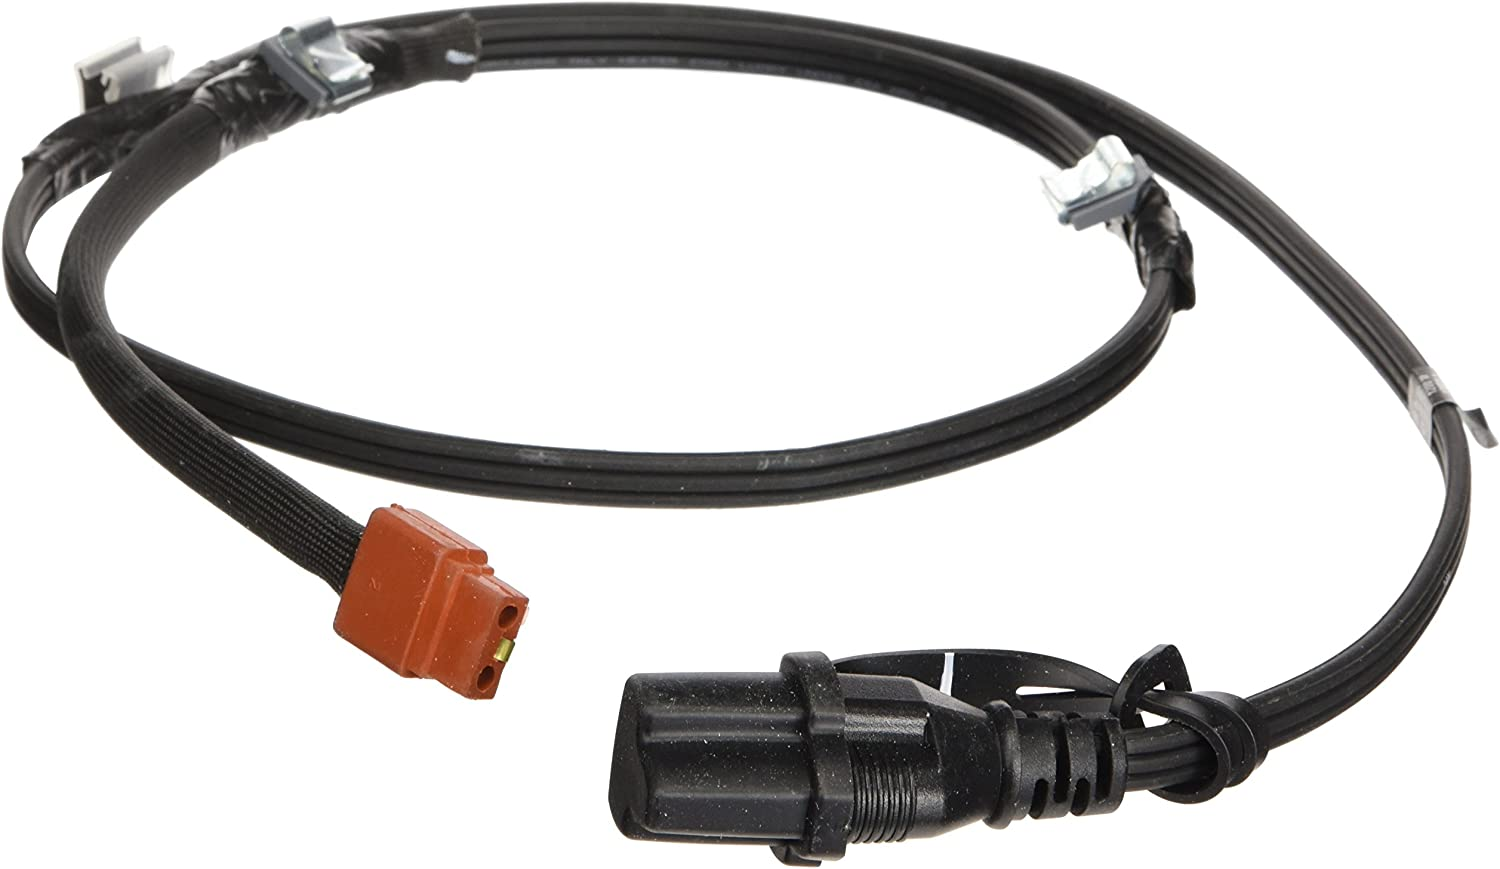 400 Watts Subaru Zerostart 3100008 Engine Block Heater for Pontiac 36mm Thread 120 Volts Saab CSA Approved